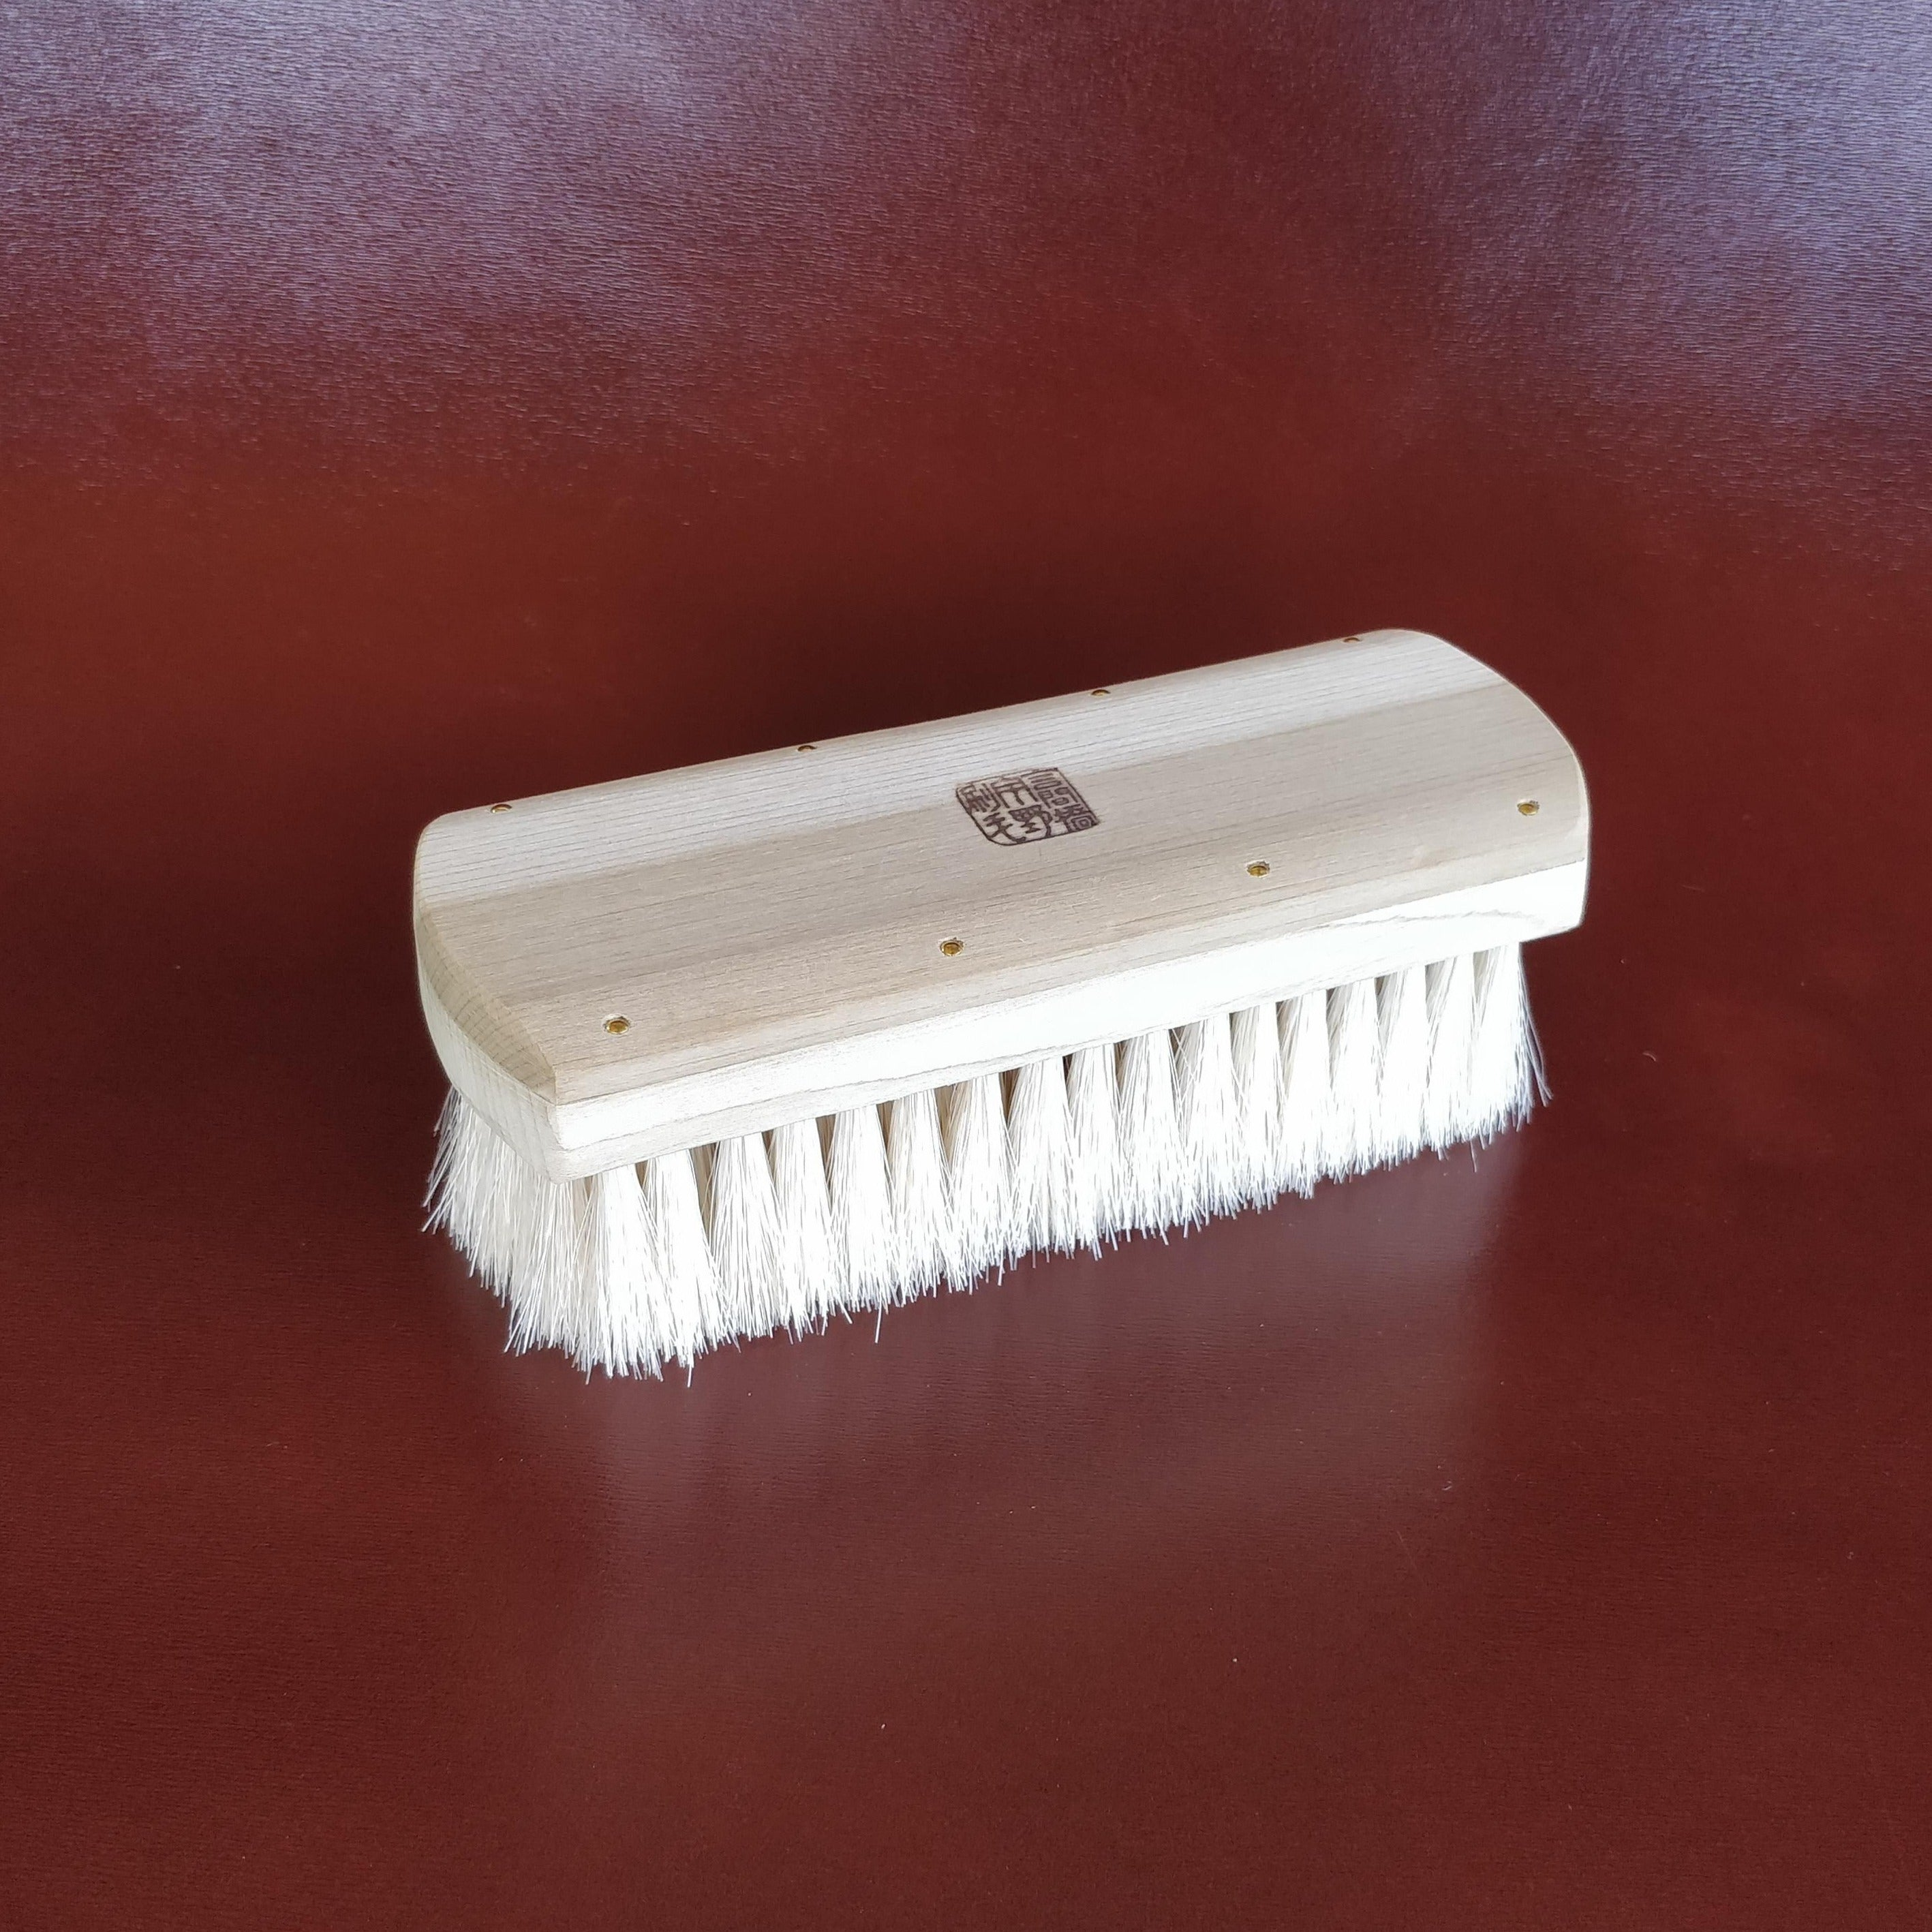 Unobrush Horse Hair Shoe Shine Brush by Fumu Top Angle